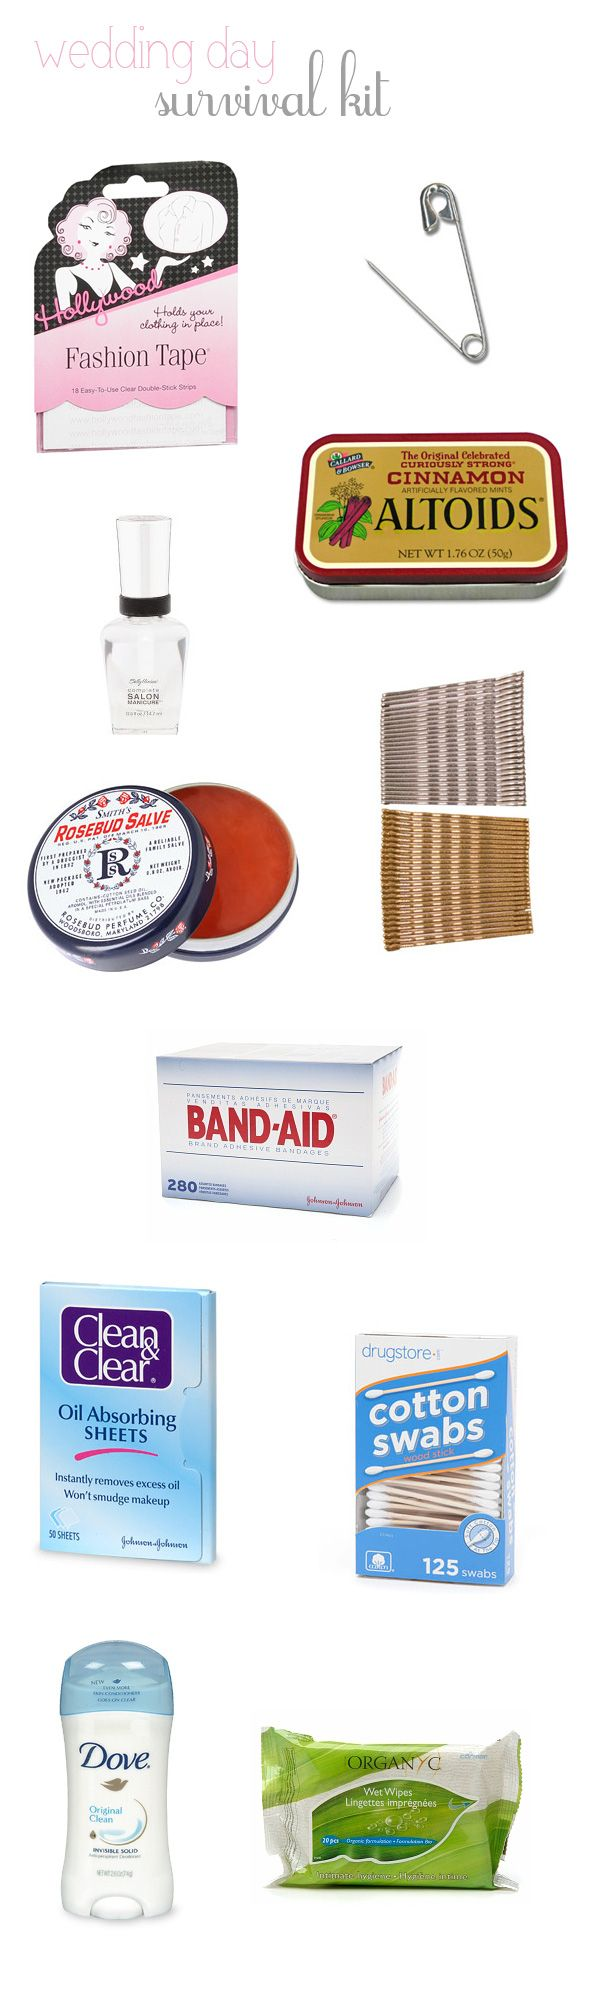 DIY wedding emergency kit